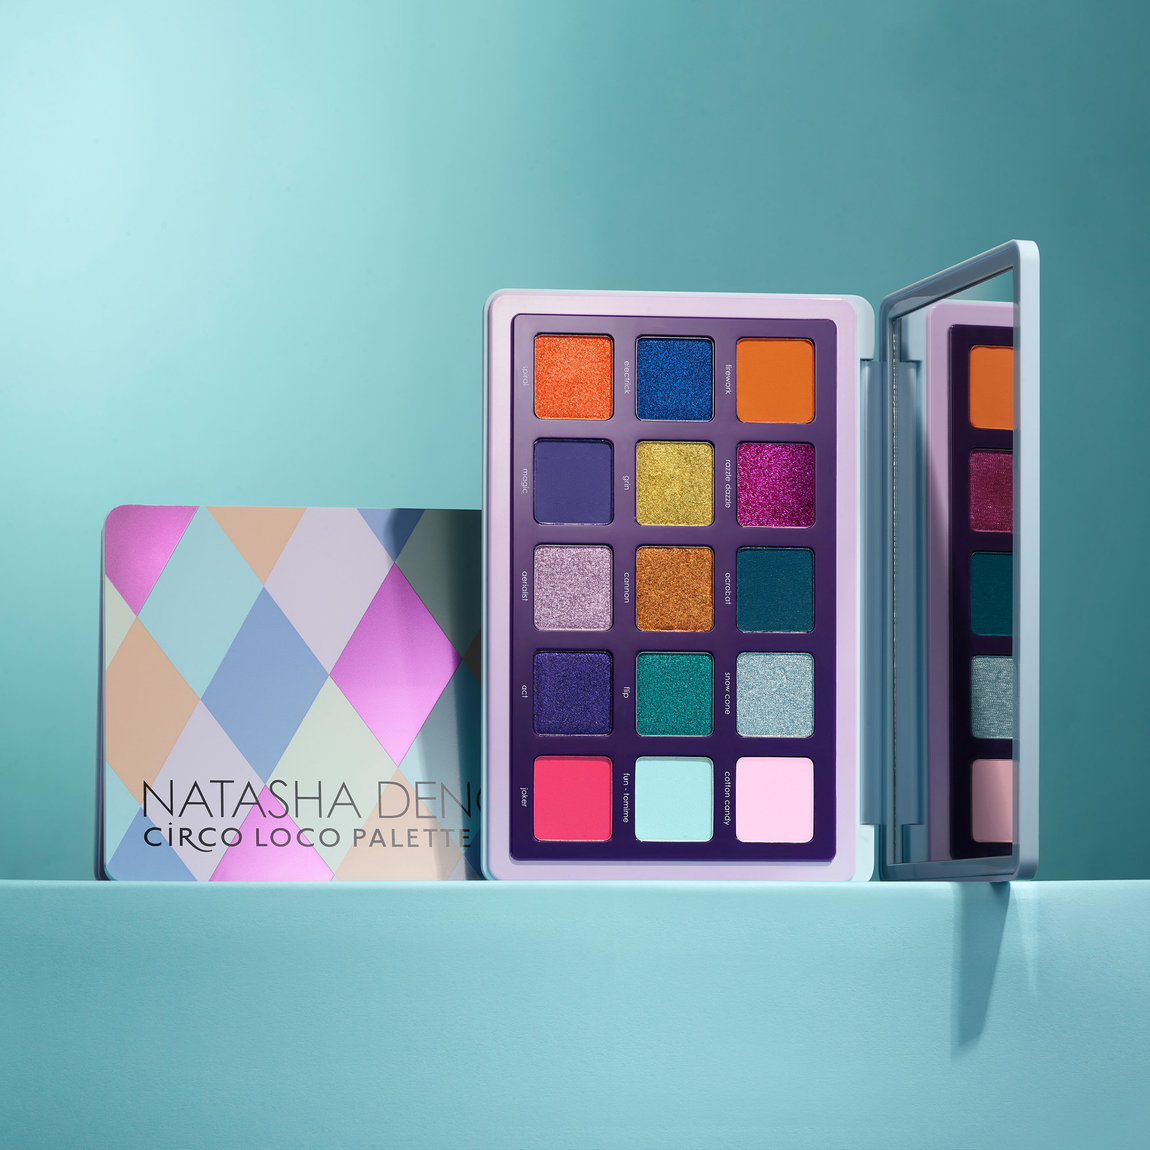 Alternate product image for Circo Loco Palette shown with the description.